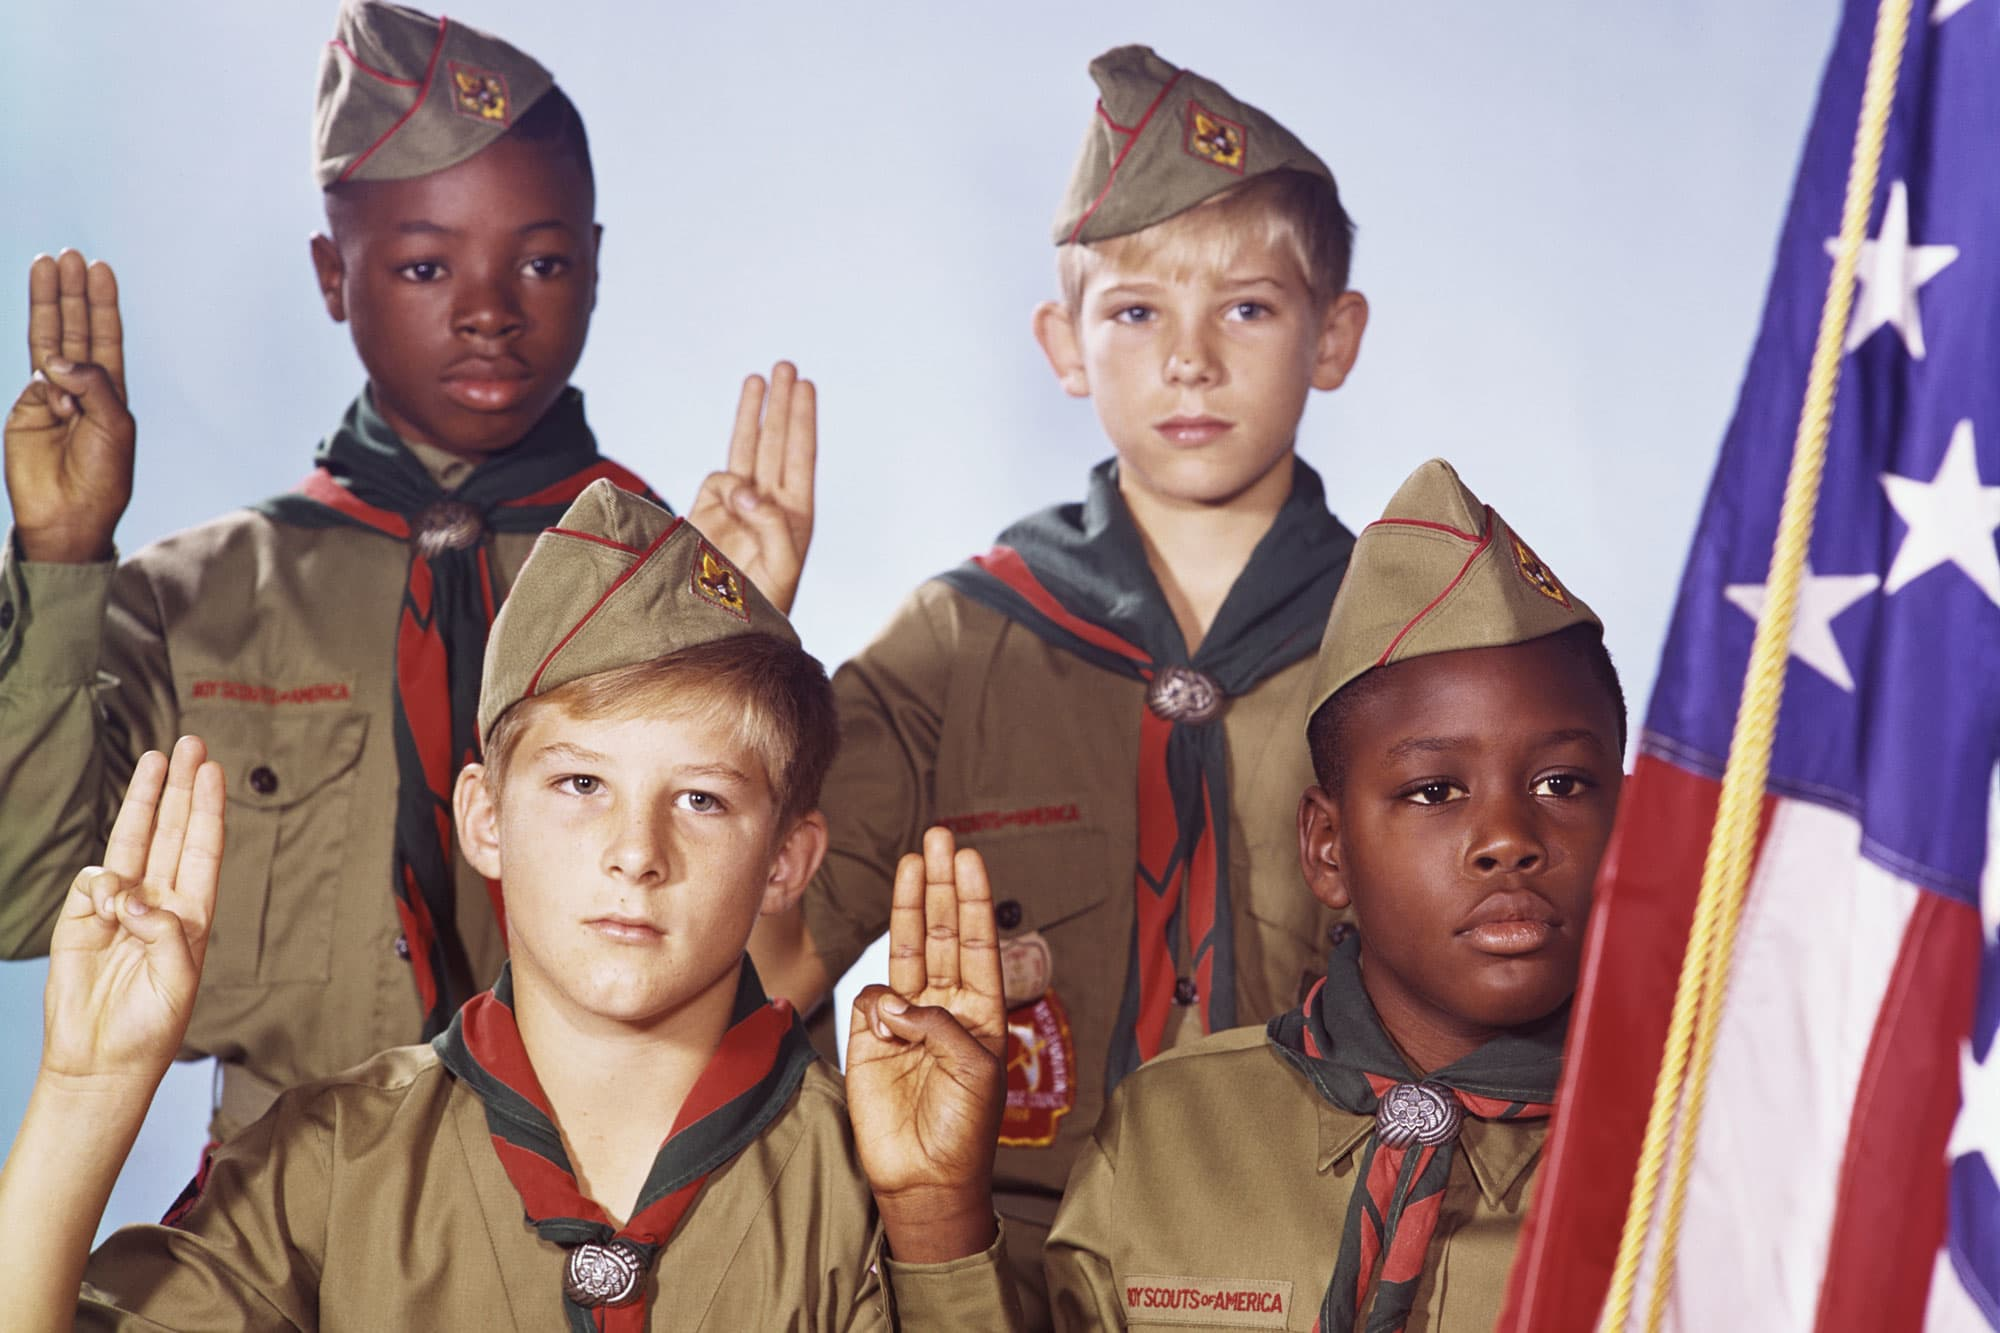 Boy Scouts expand programs to include girls